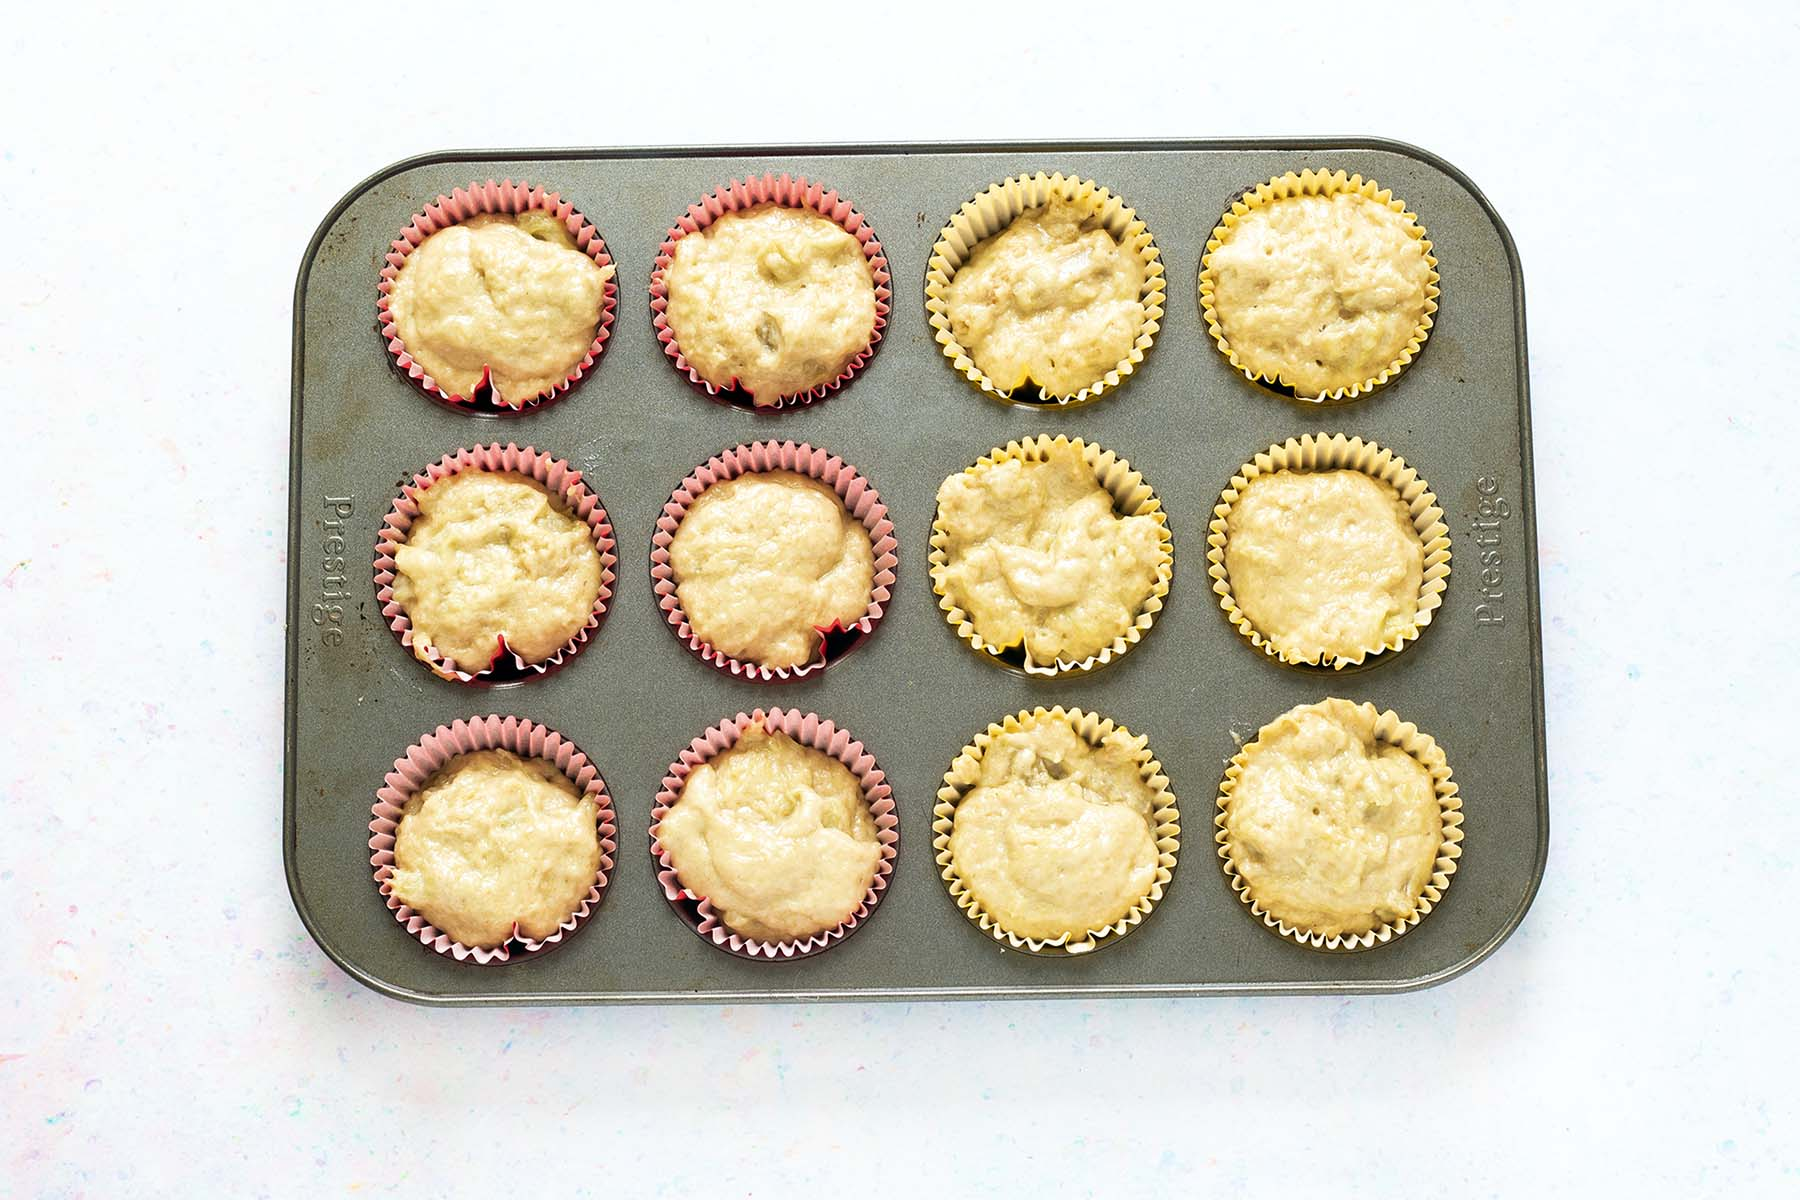 uncooked rhubarb muffins in tray